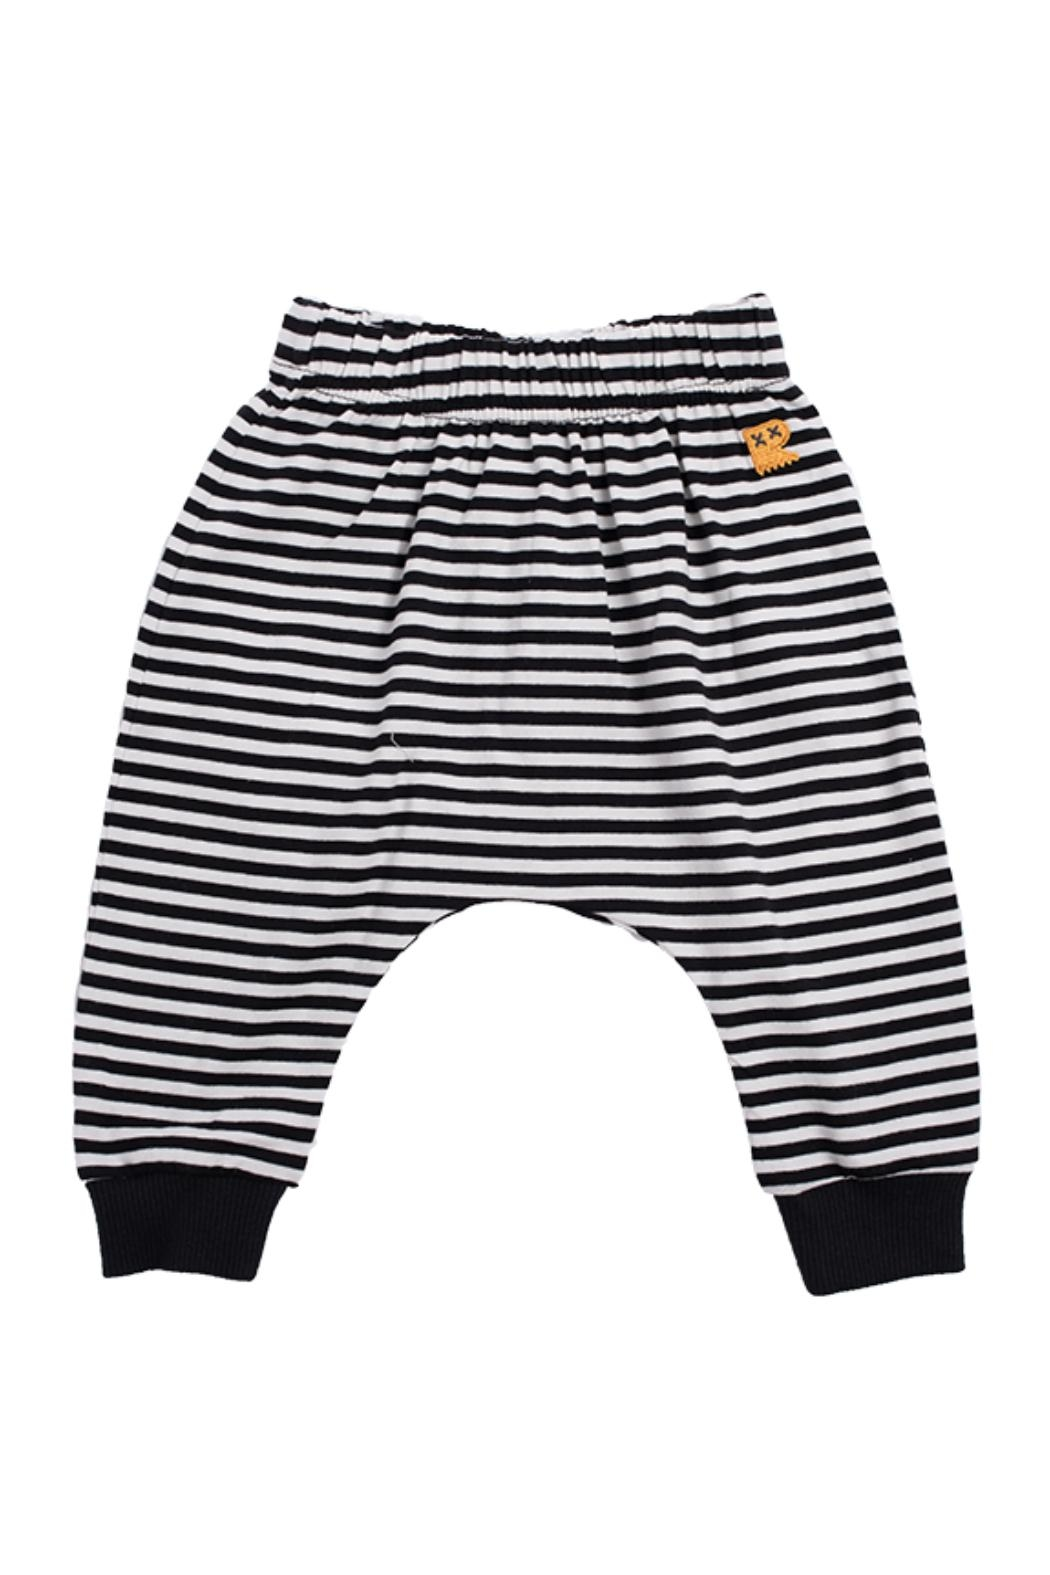 Rock Your Baby Stripe Trousers - Main Image